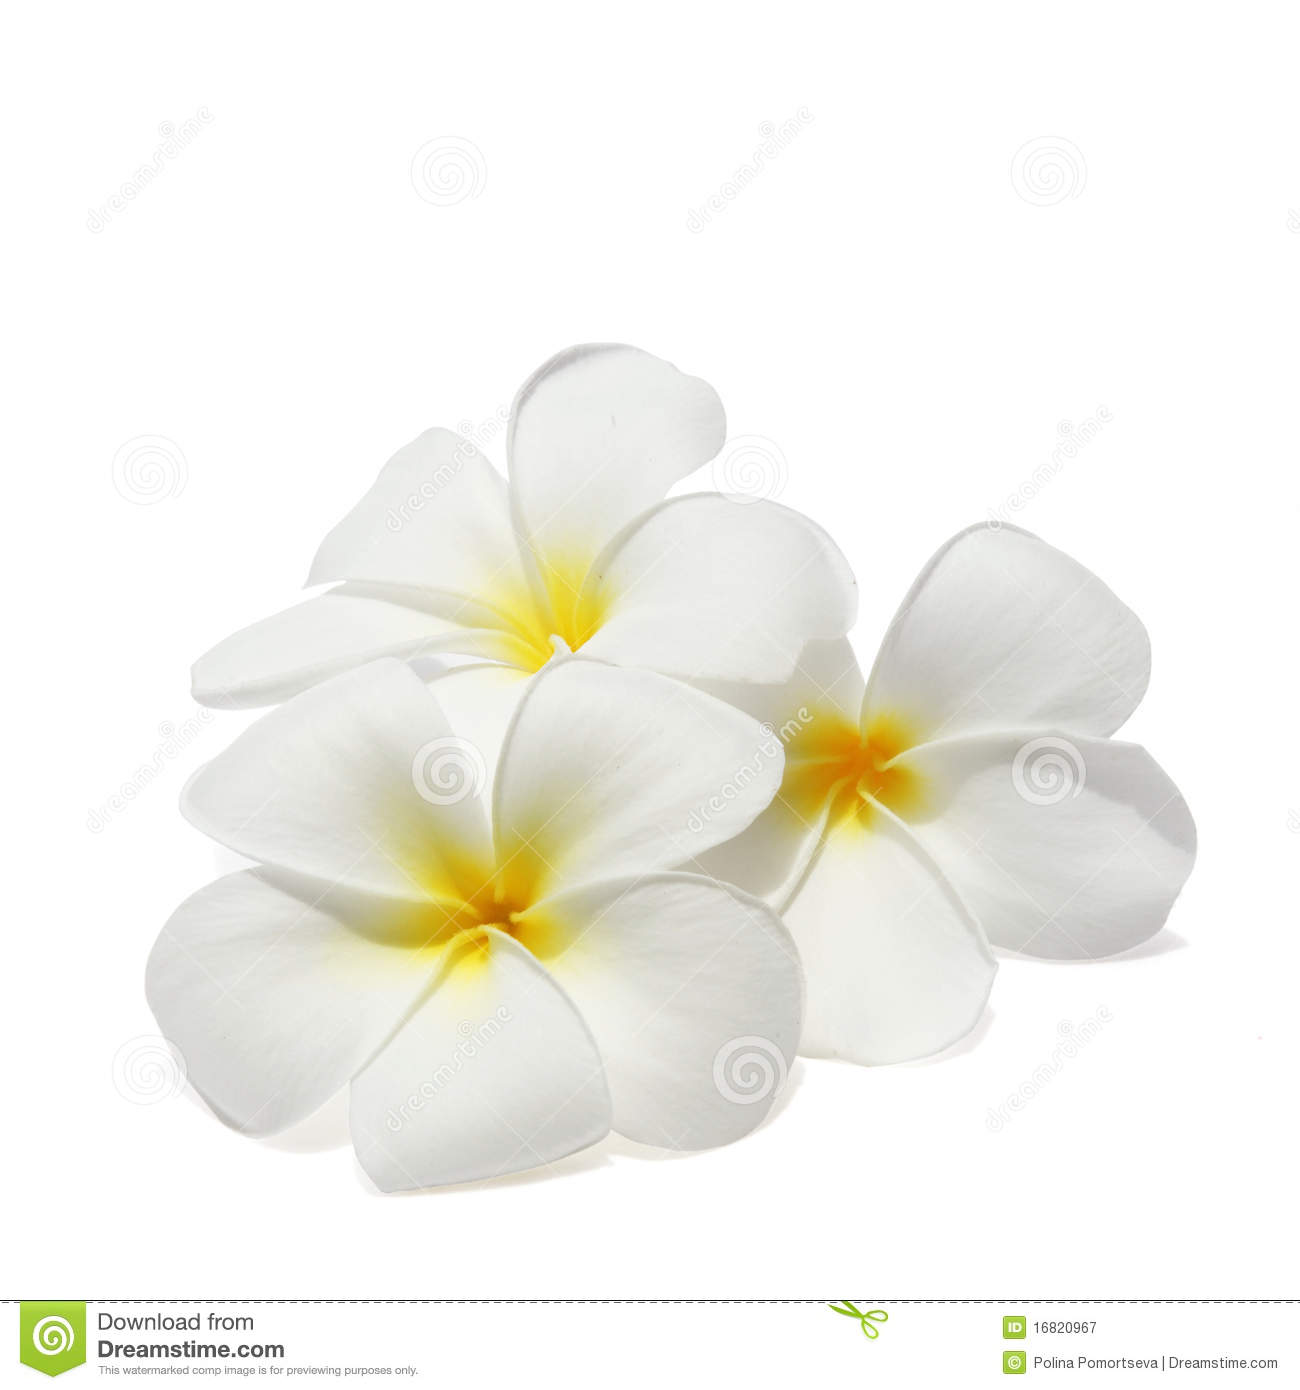 Tropical flowers pictures free jpg black and white Tropical Flowers Frangipani Isolated On White Royalty Free Stock ... jpg black and white